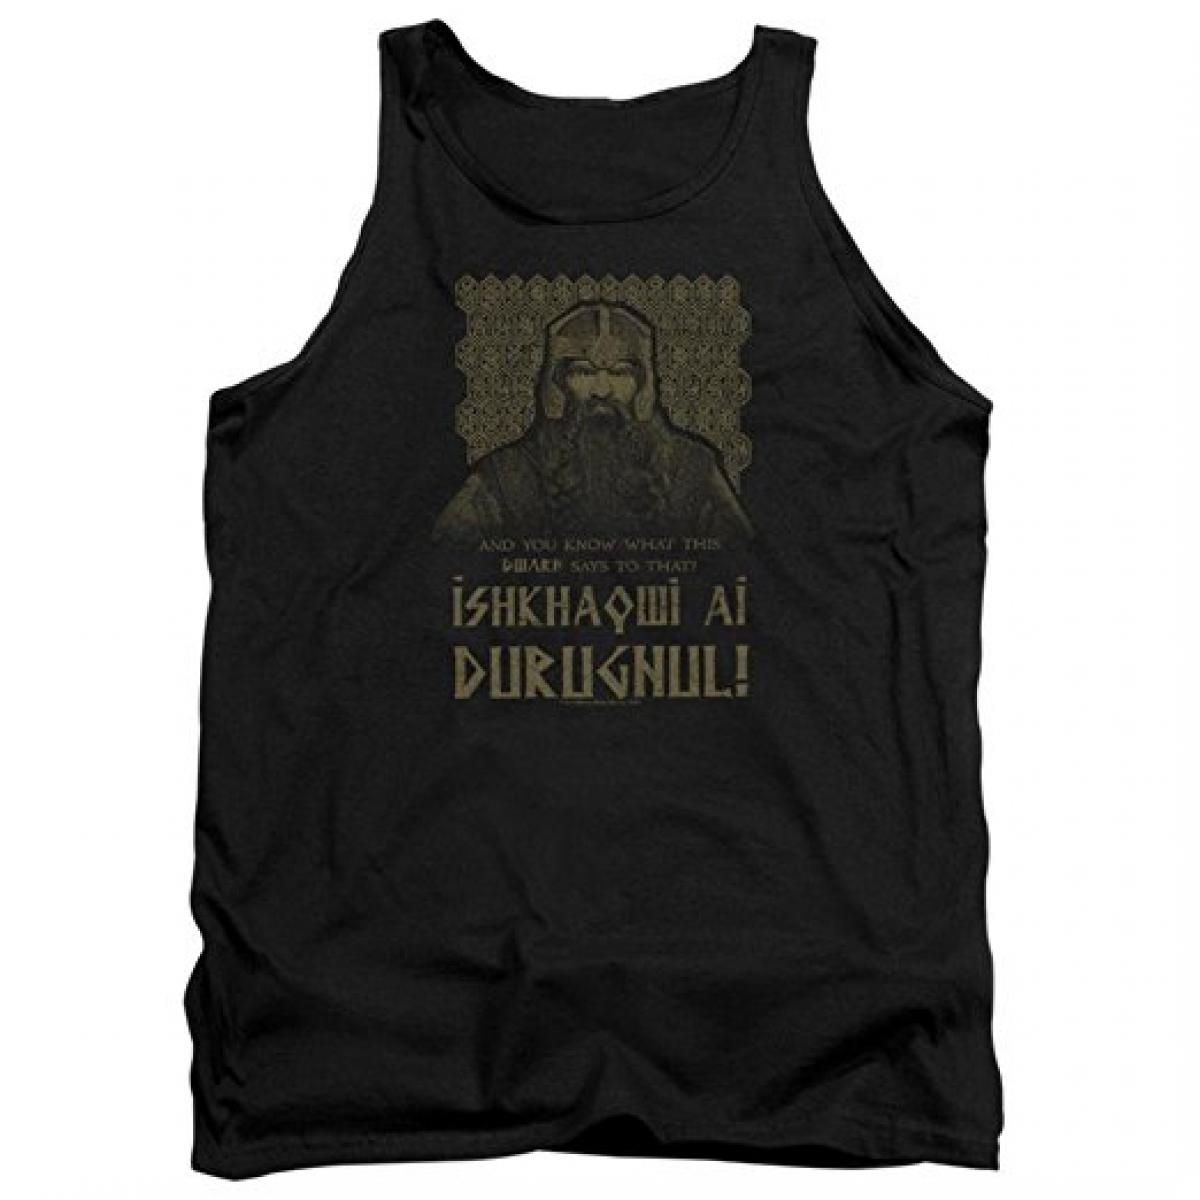 Lord Of The Rings Ishkhaqwi Durugnul Mens Tank Top